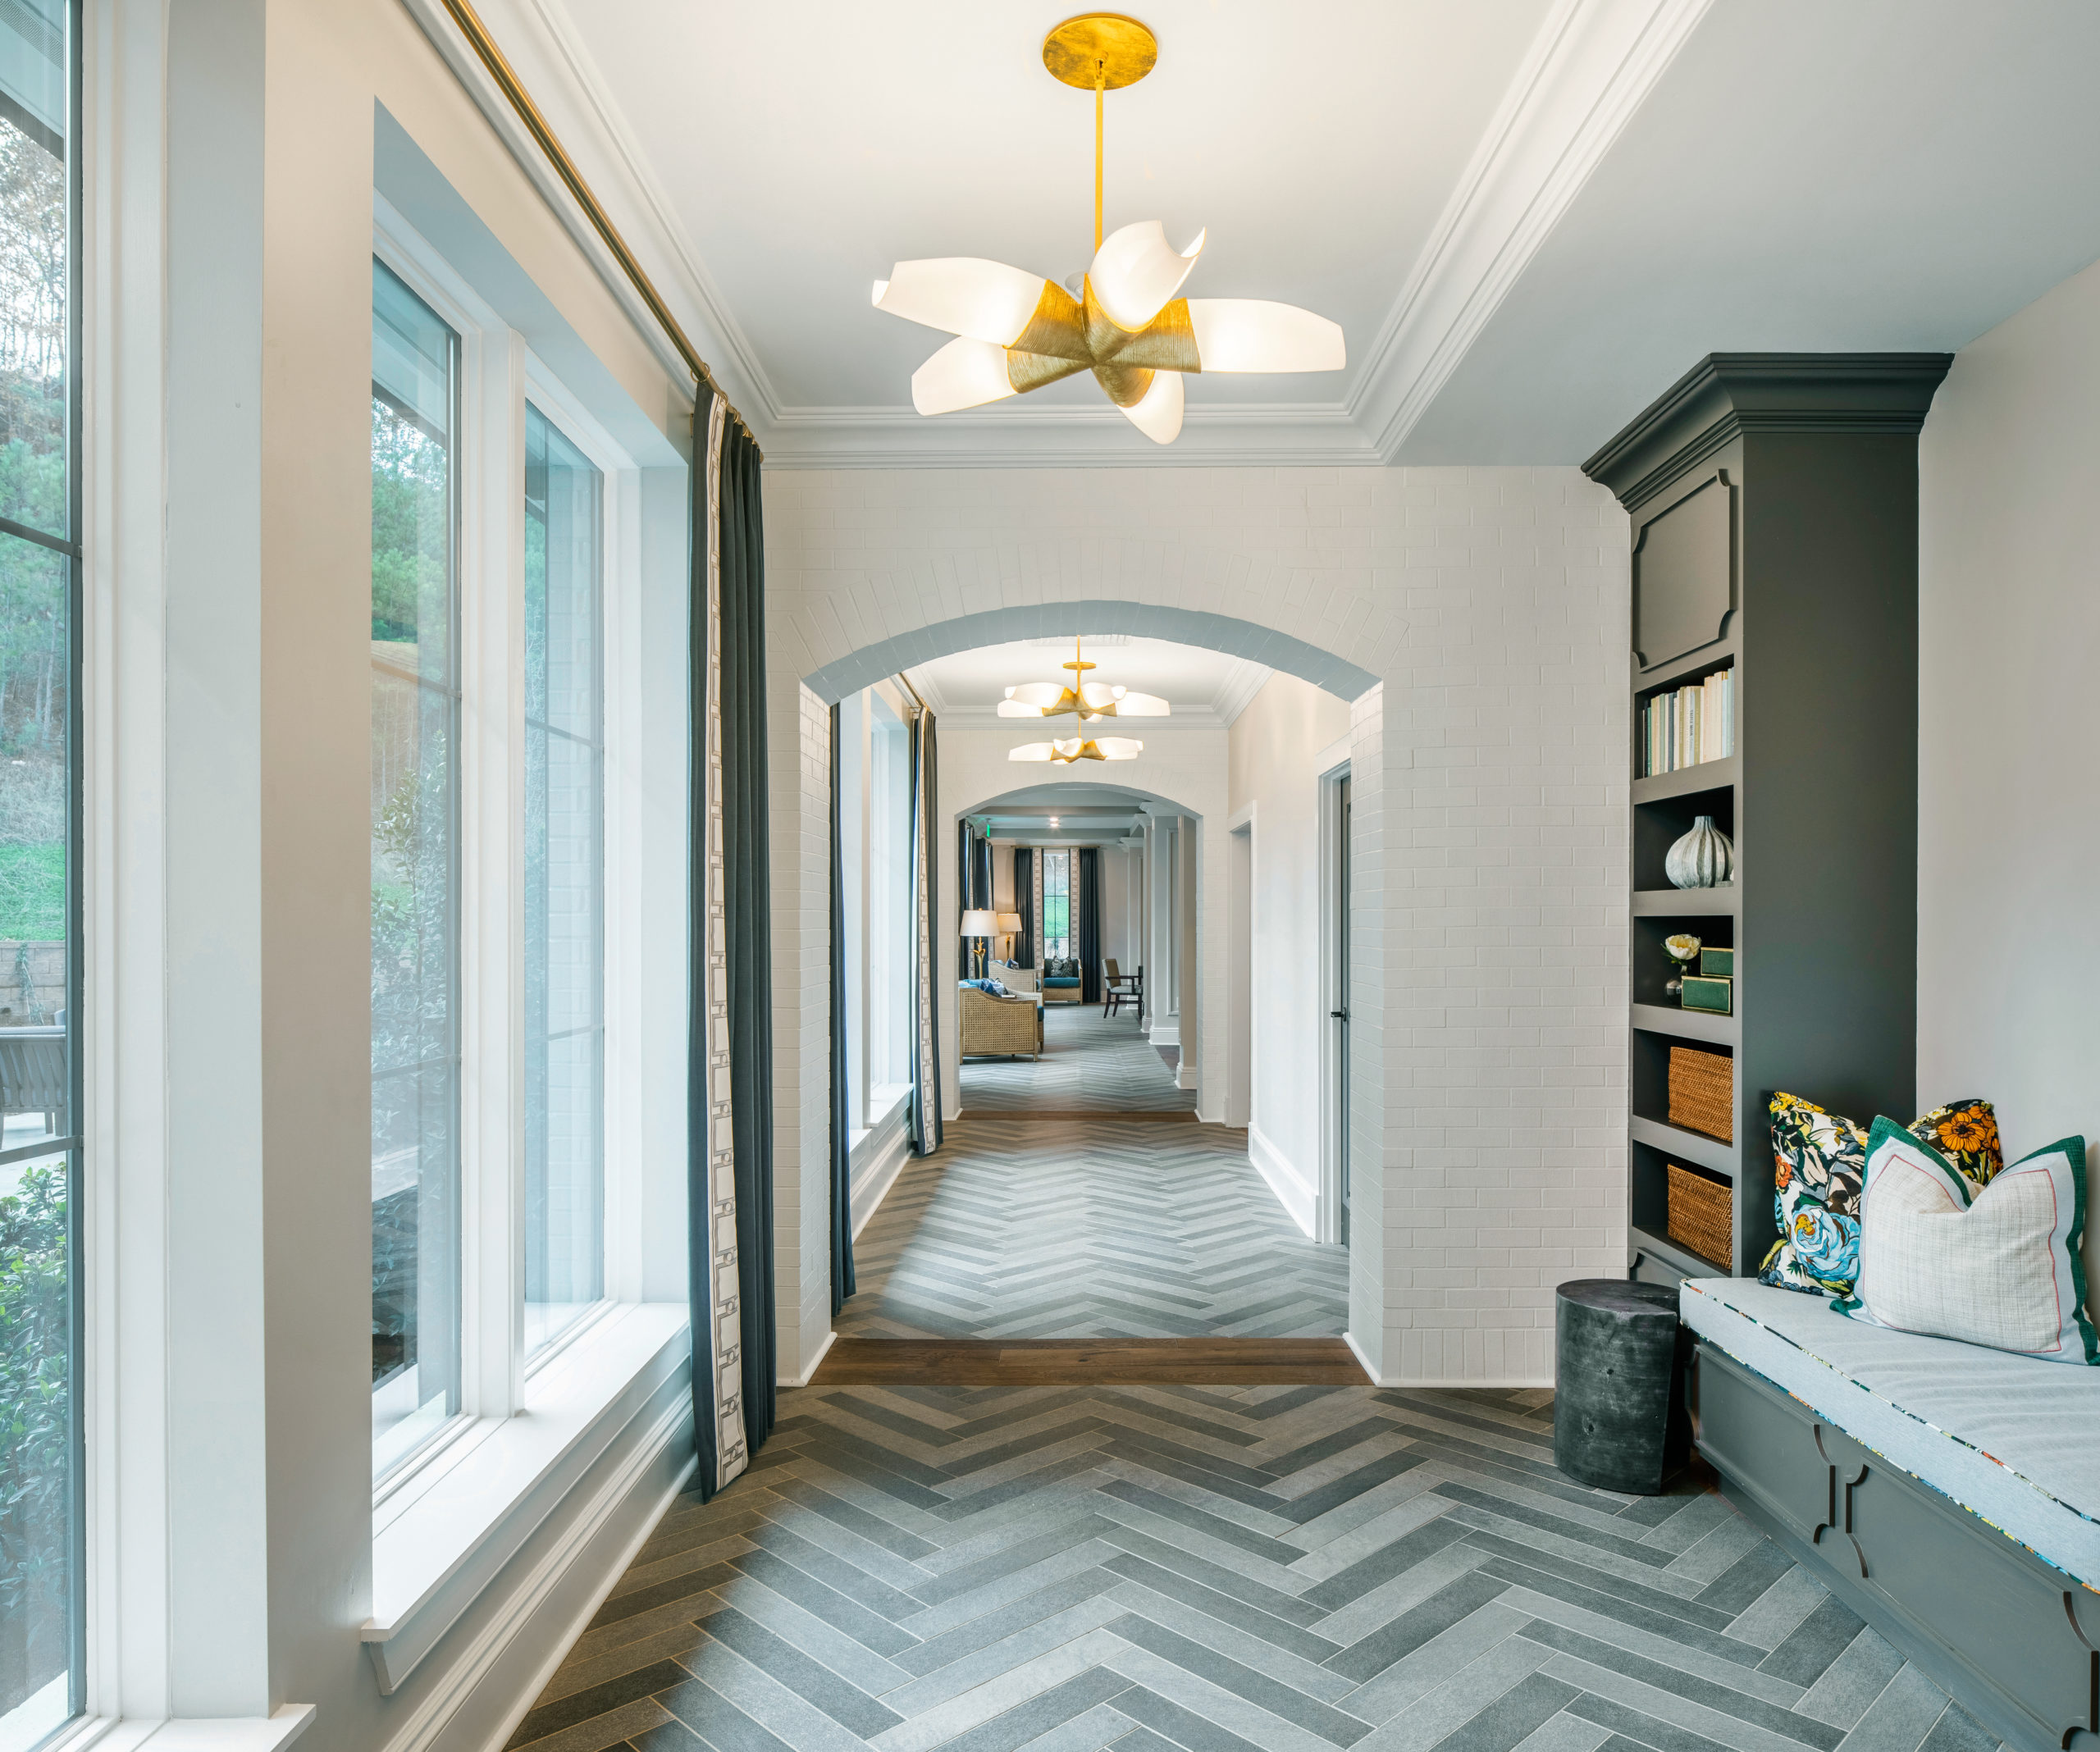 Longleaf common space with arched hallway, windows at left, gray shelves, bench seating, white walls and grey chevron pattern on flooring